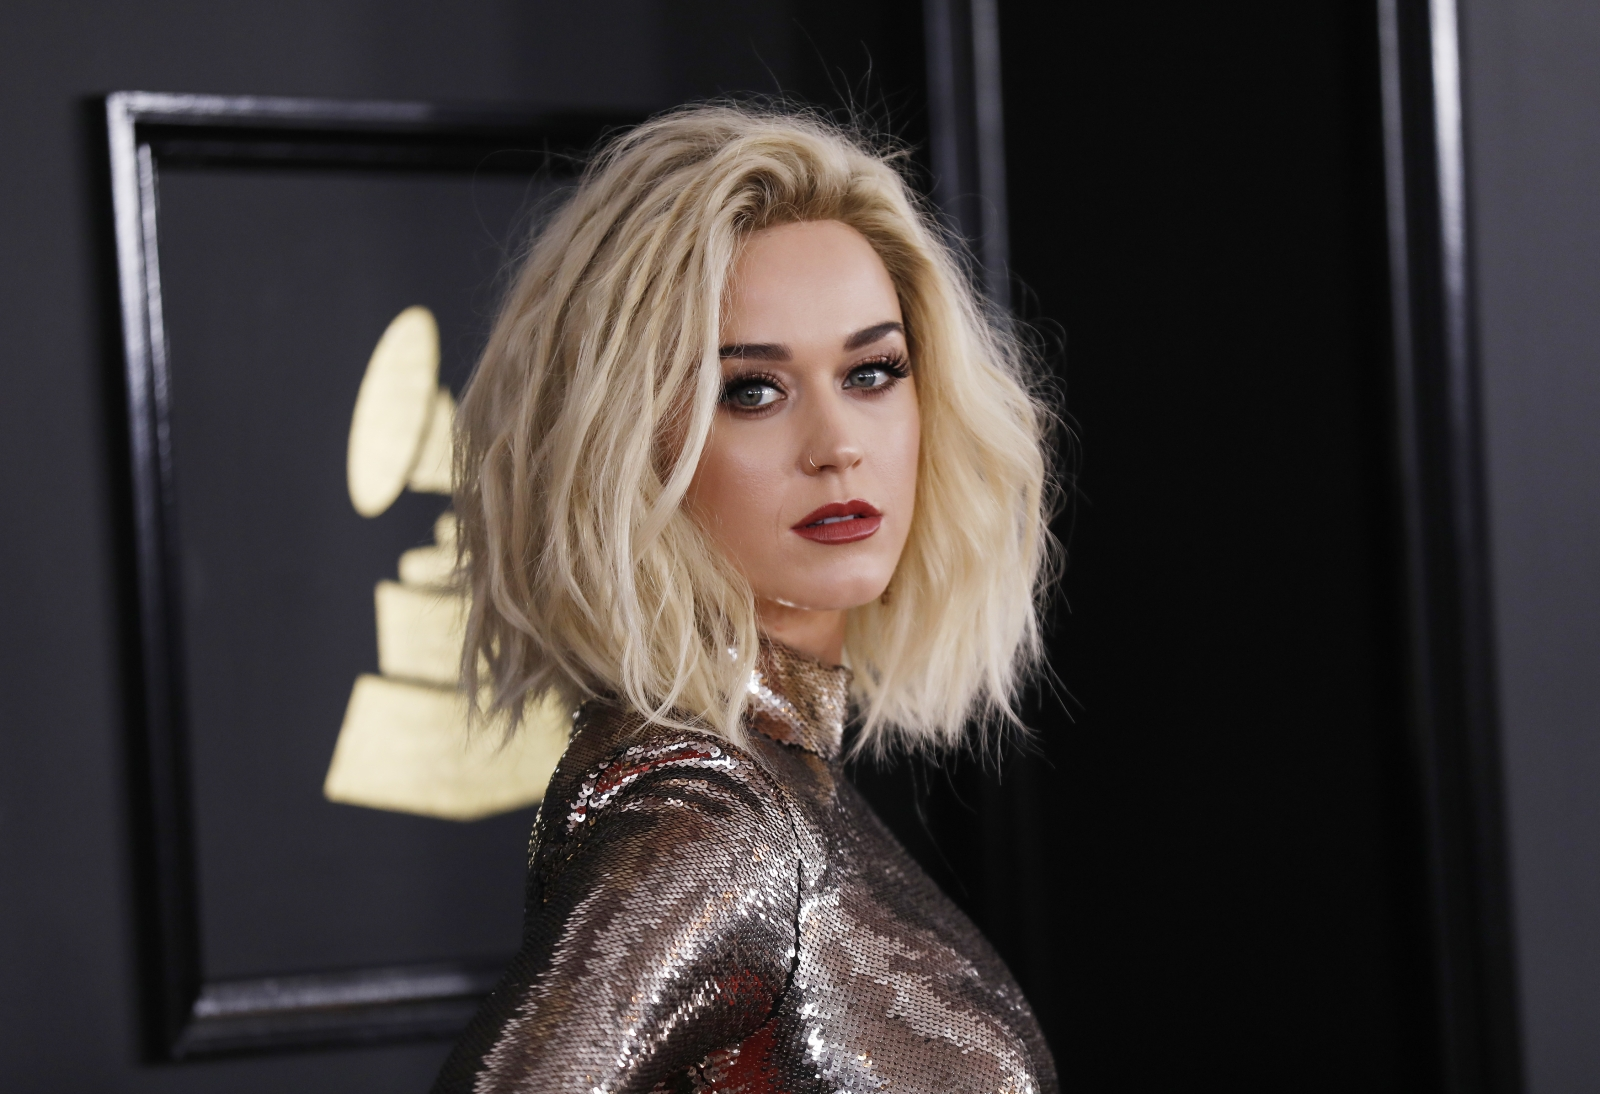 Katy Perry shows solidarity with Elizabeth Warren in Grammys performance